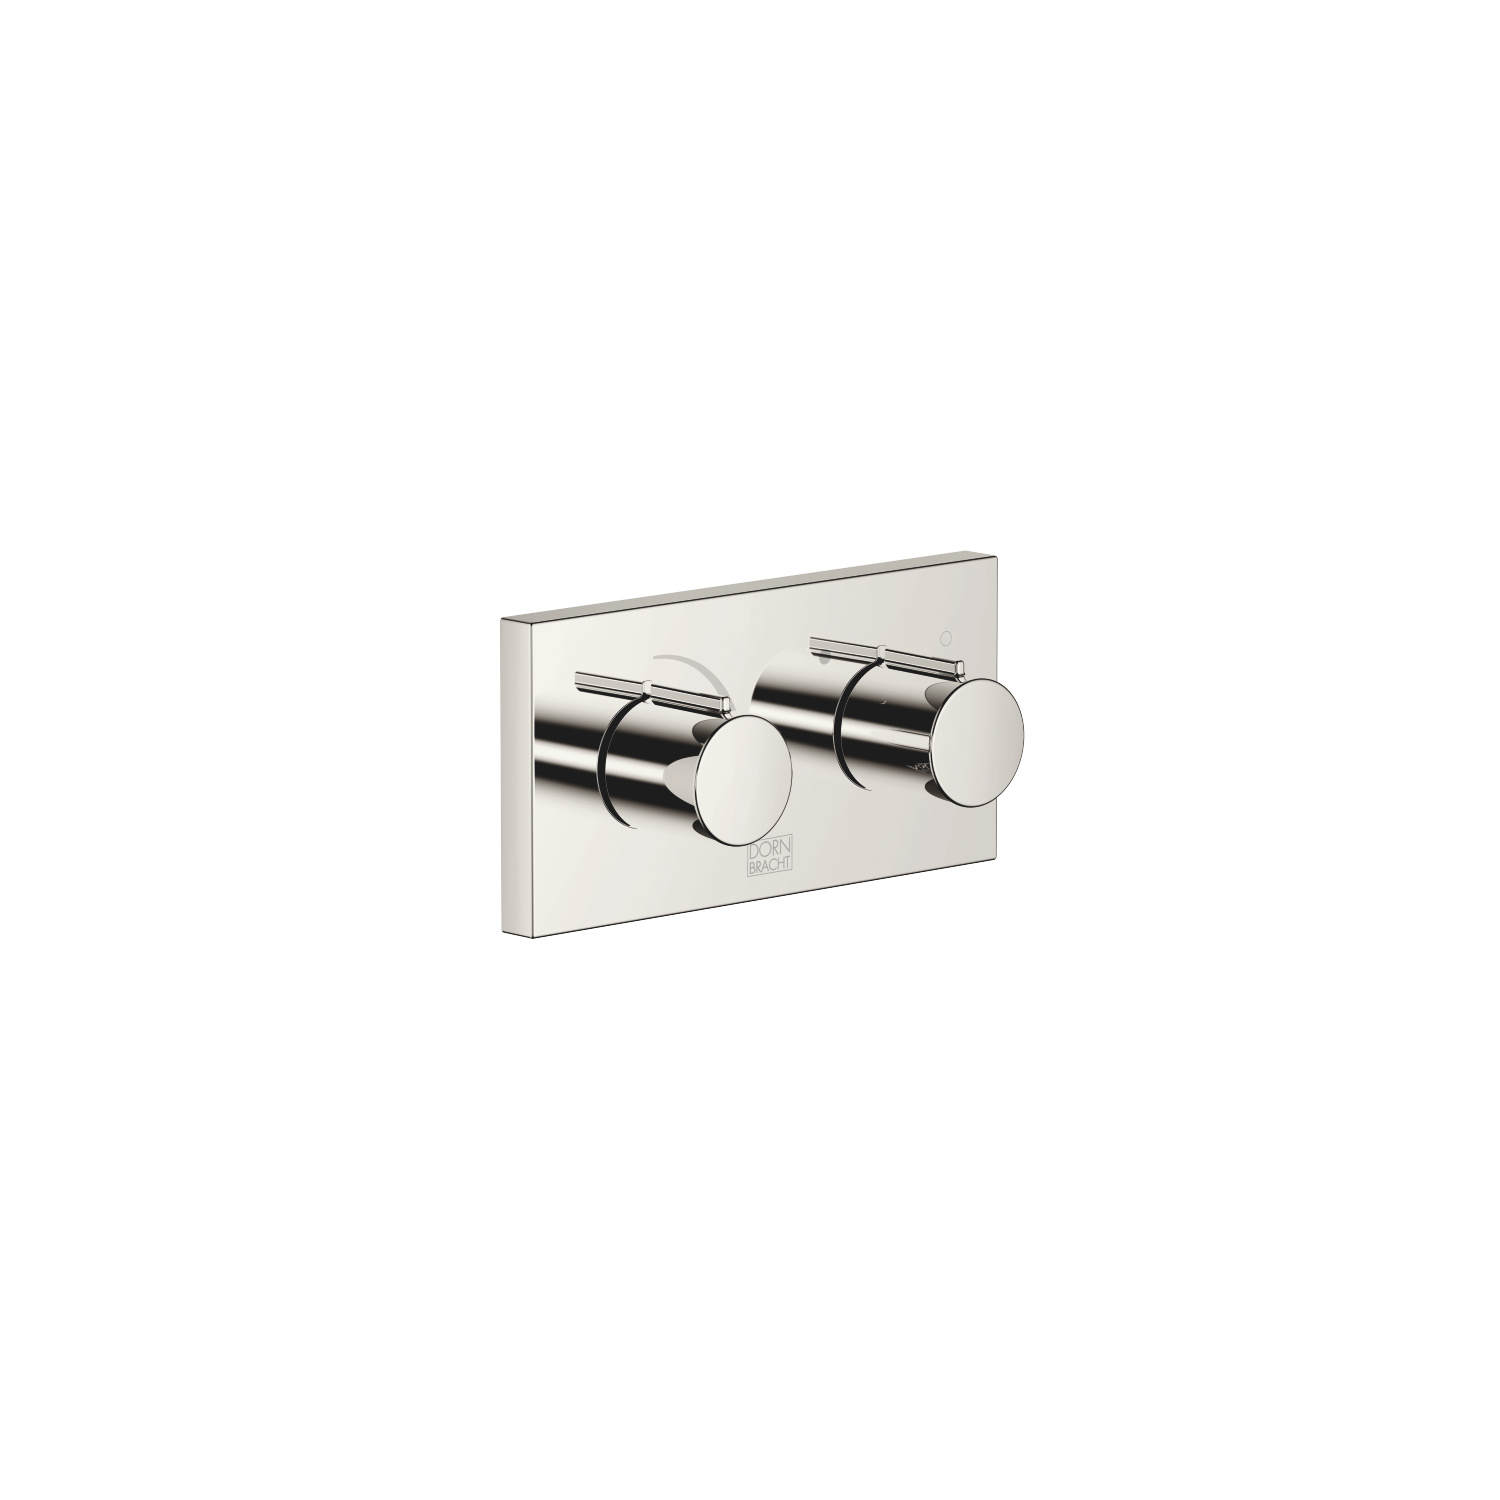 xGATE Mixer valve with volume control for wall mounting - platinum